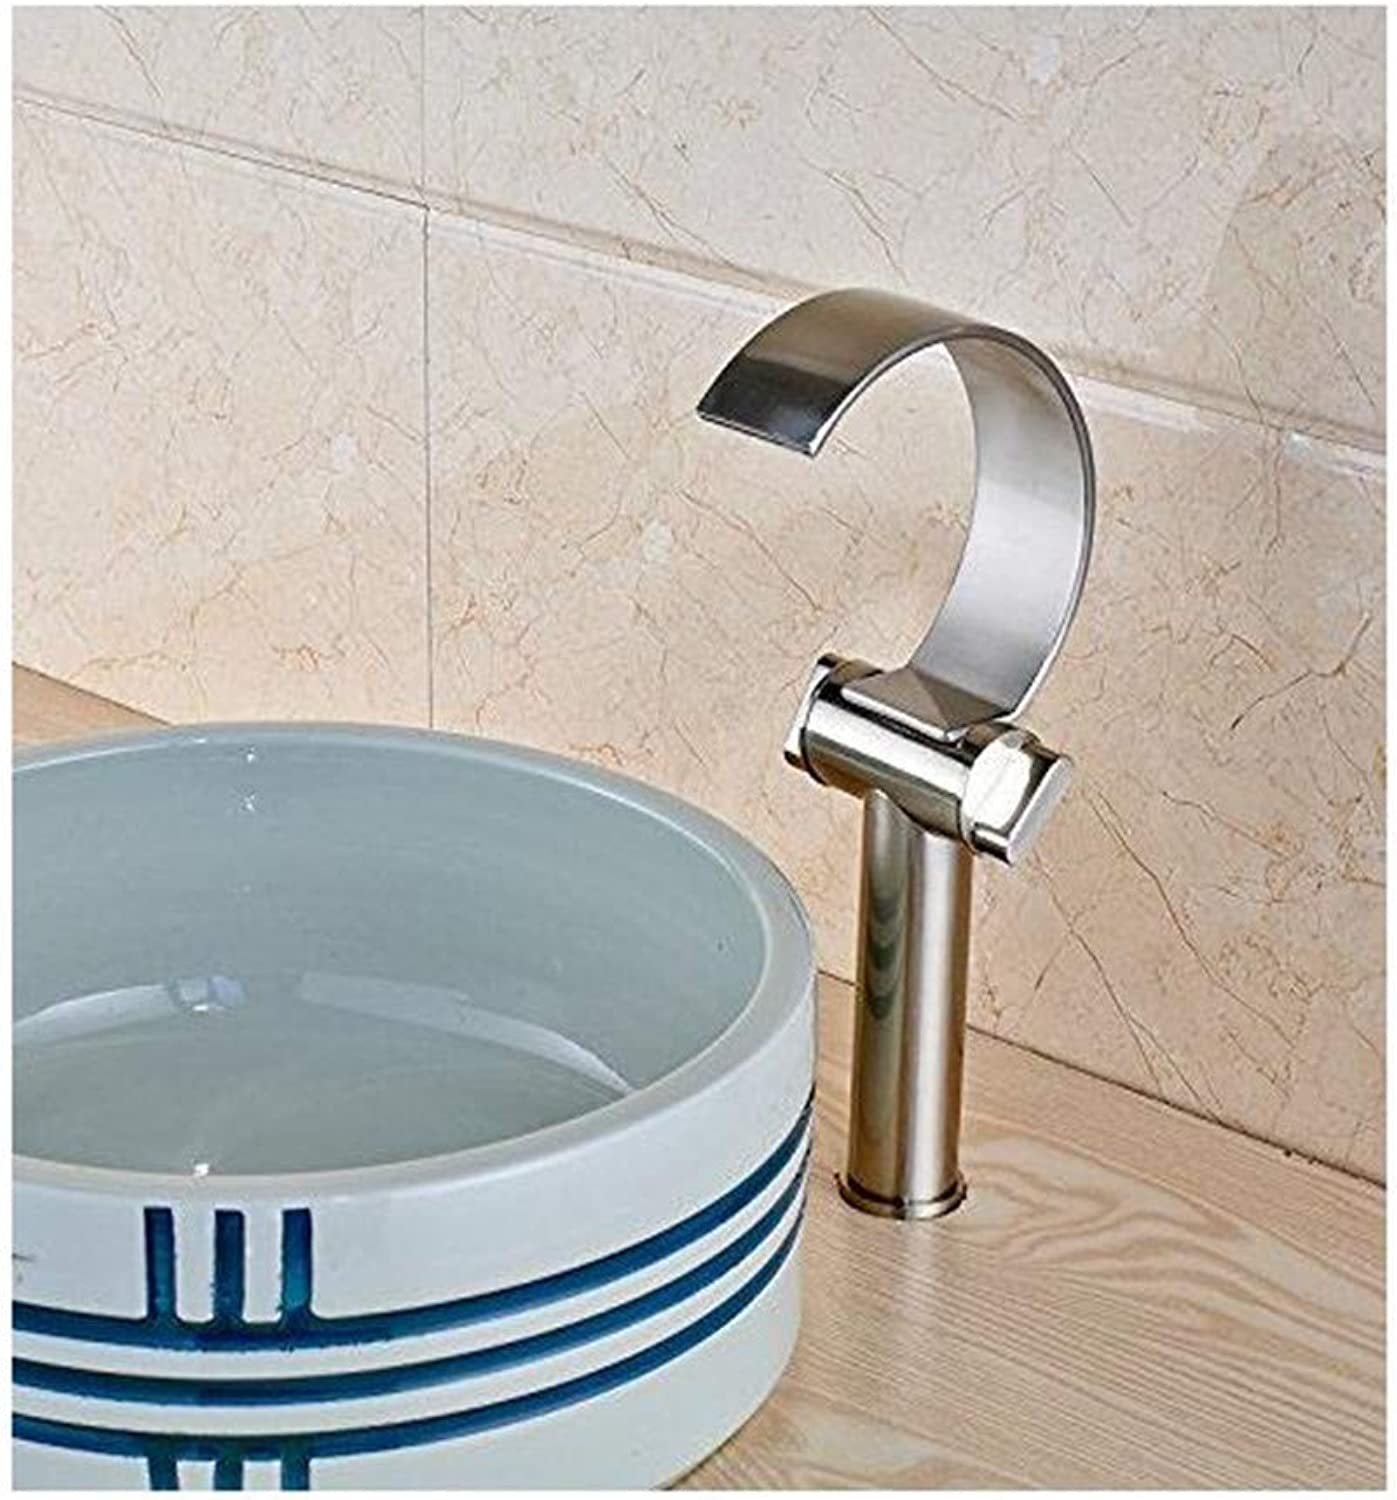 Faucet Luxury Modern Plated Mixer Faucet Dual Handles Three Holes Brushed Nickel Deck Mounted Bathroom Basin Sink Mixer Faucet